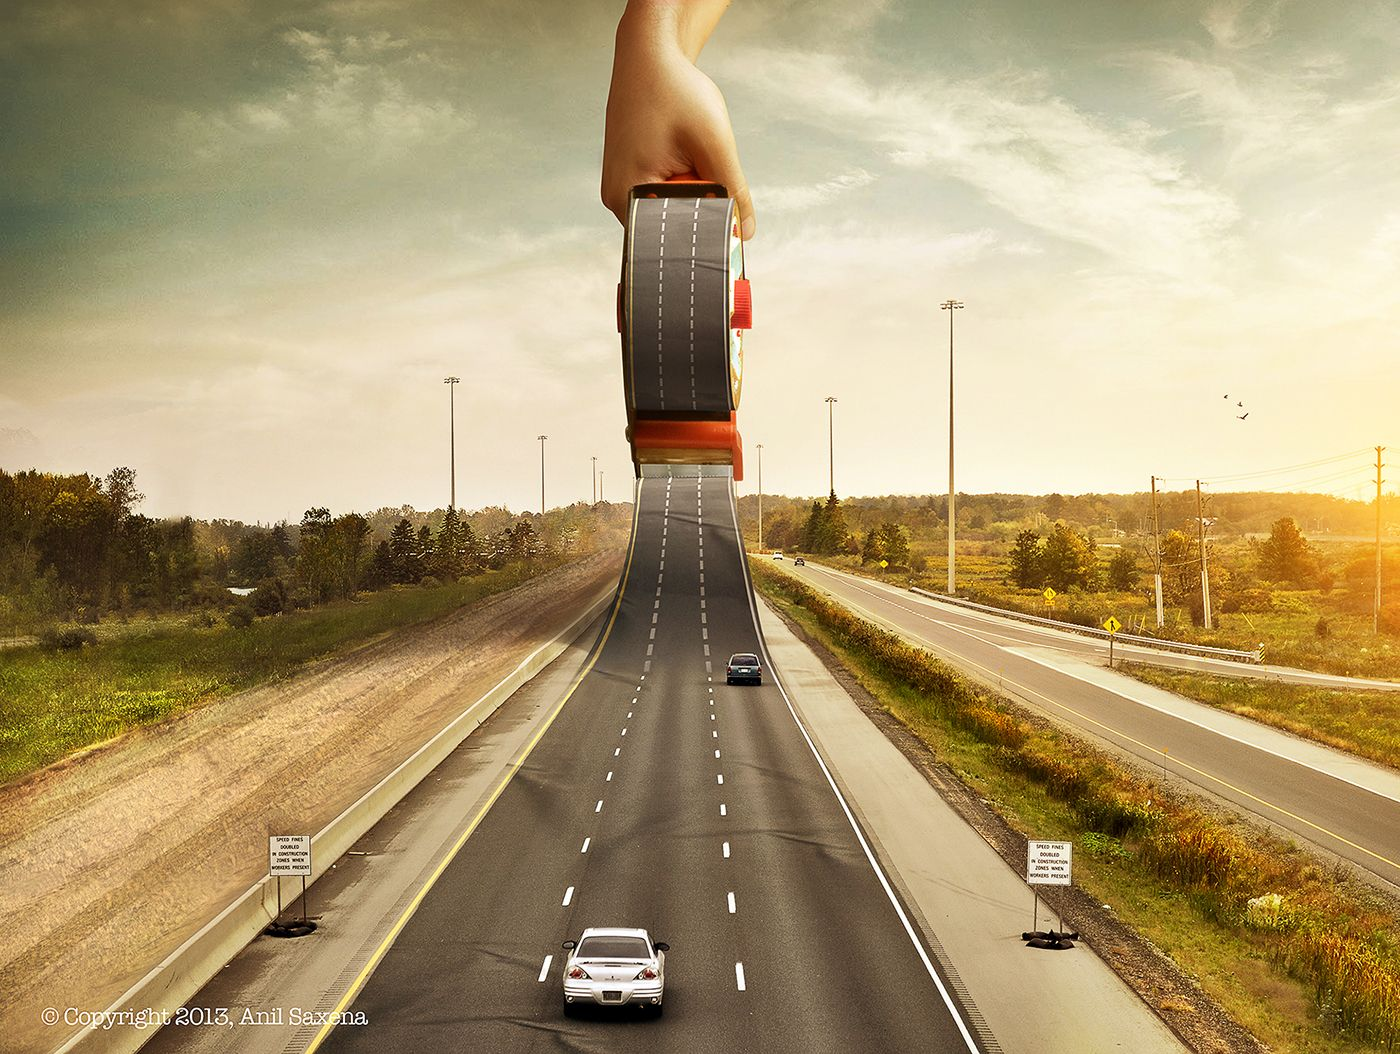 A Making Of Road On Behance Photoshop Photography Miniature Photography Graphic Design Advertising